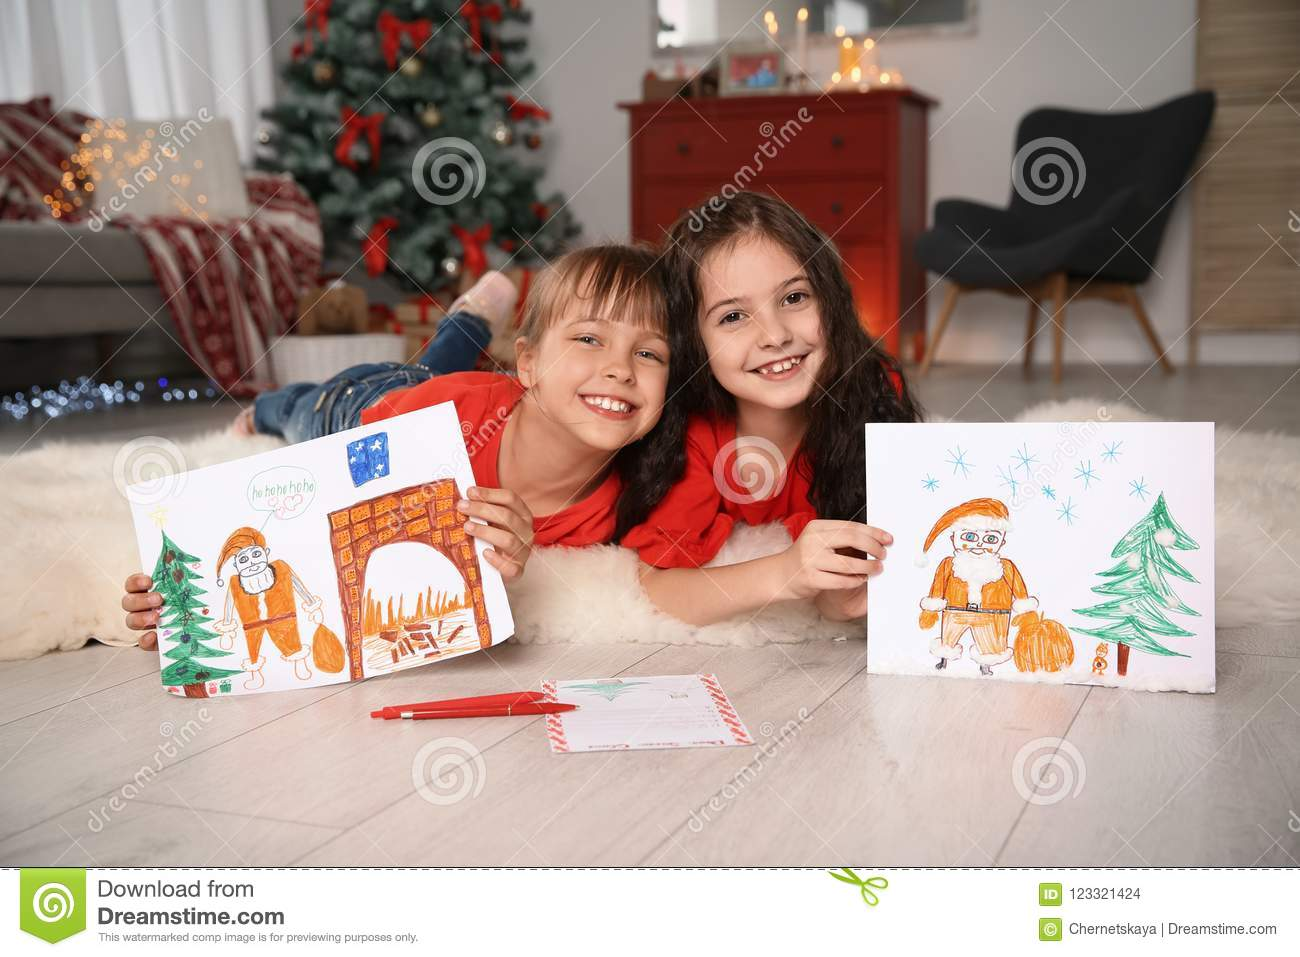 Little children with drawings and letter to Santa at home